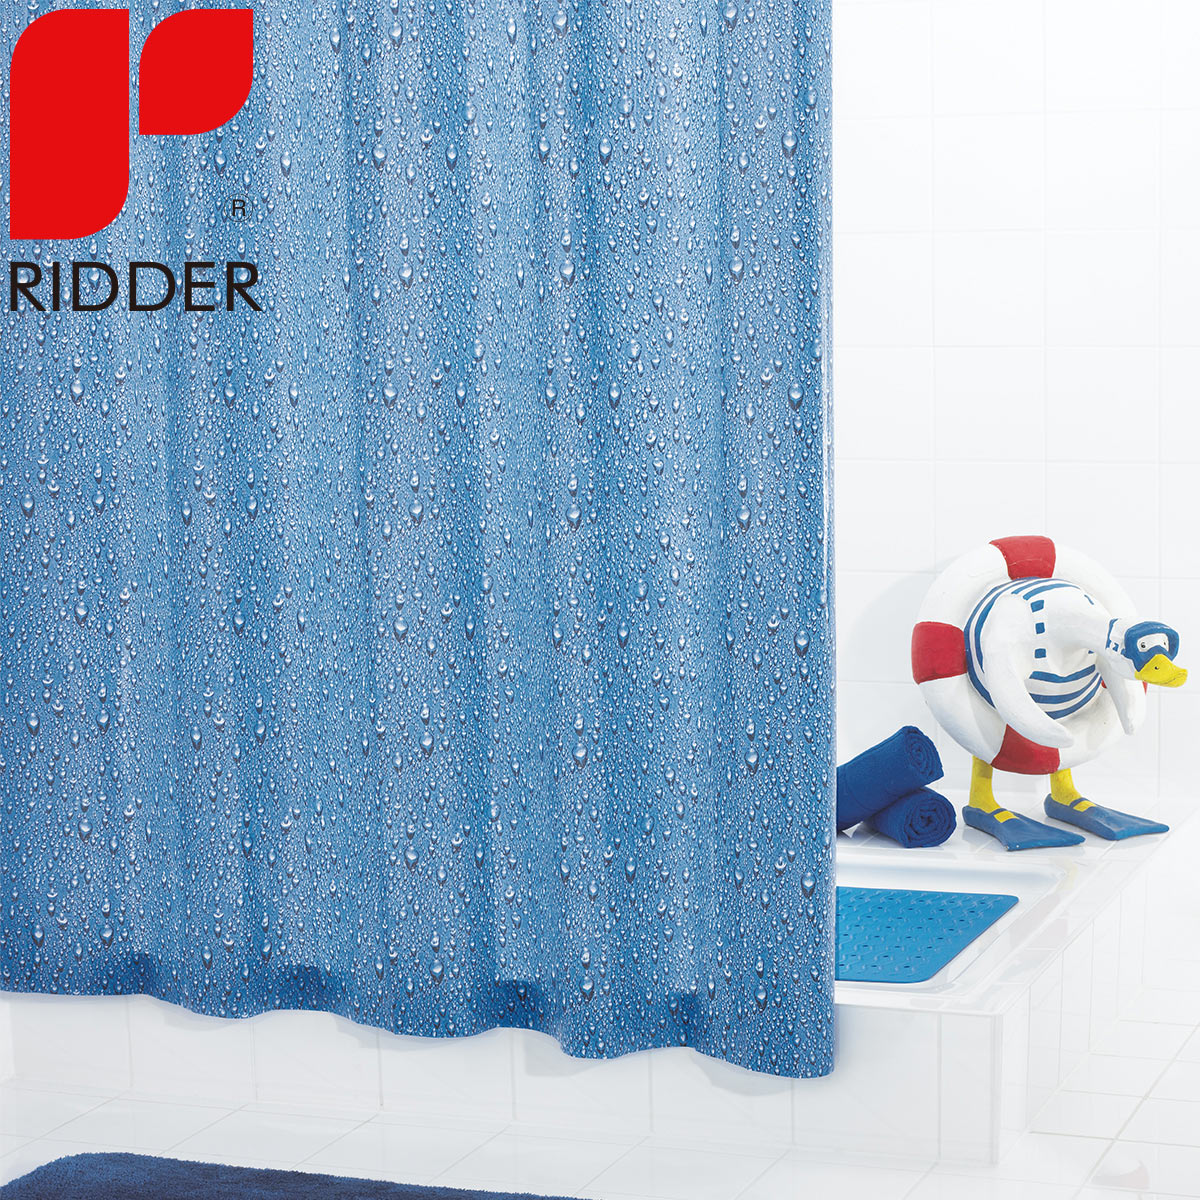 Imported from germany ridder european minimalist eva thick waterproof mildew shower curtain curtain curtain 34330